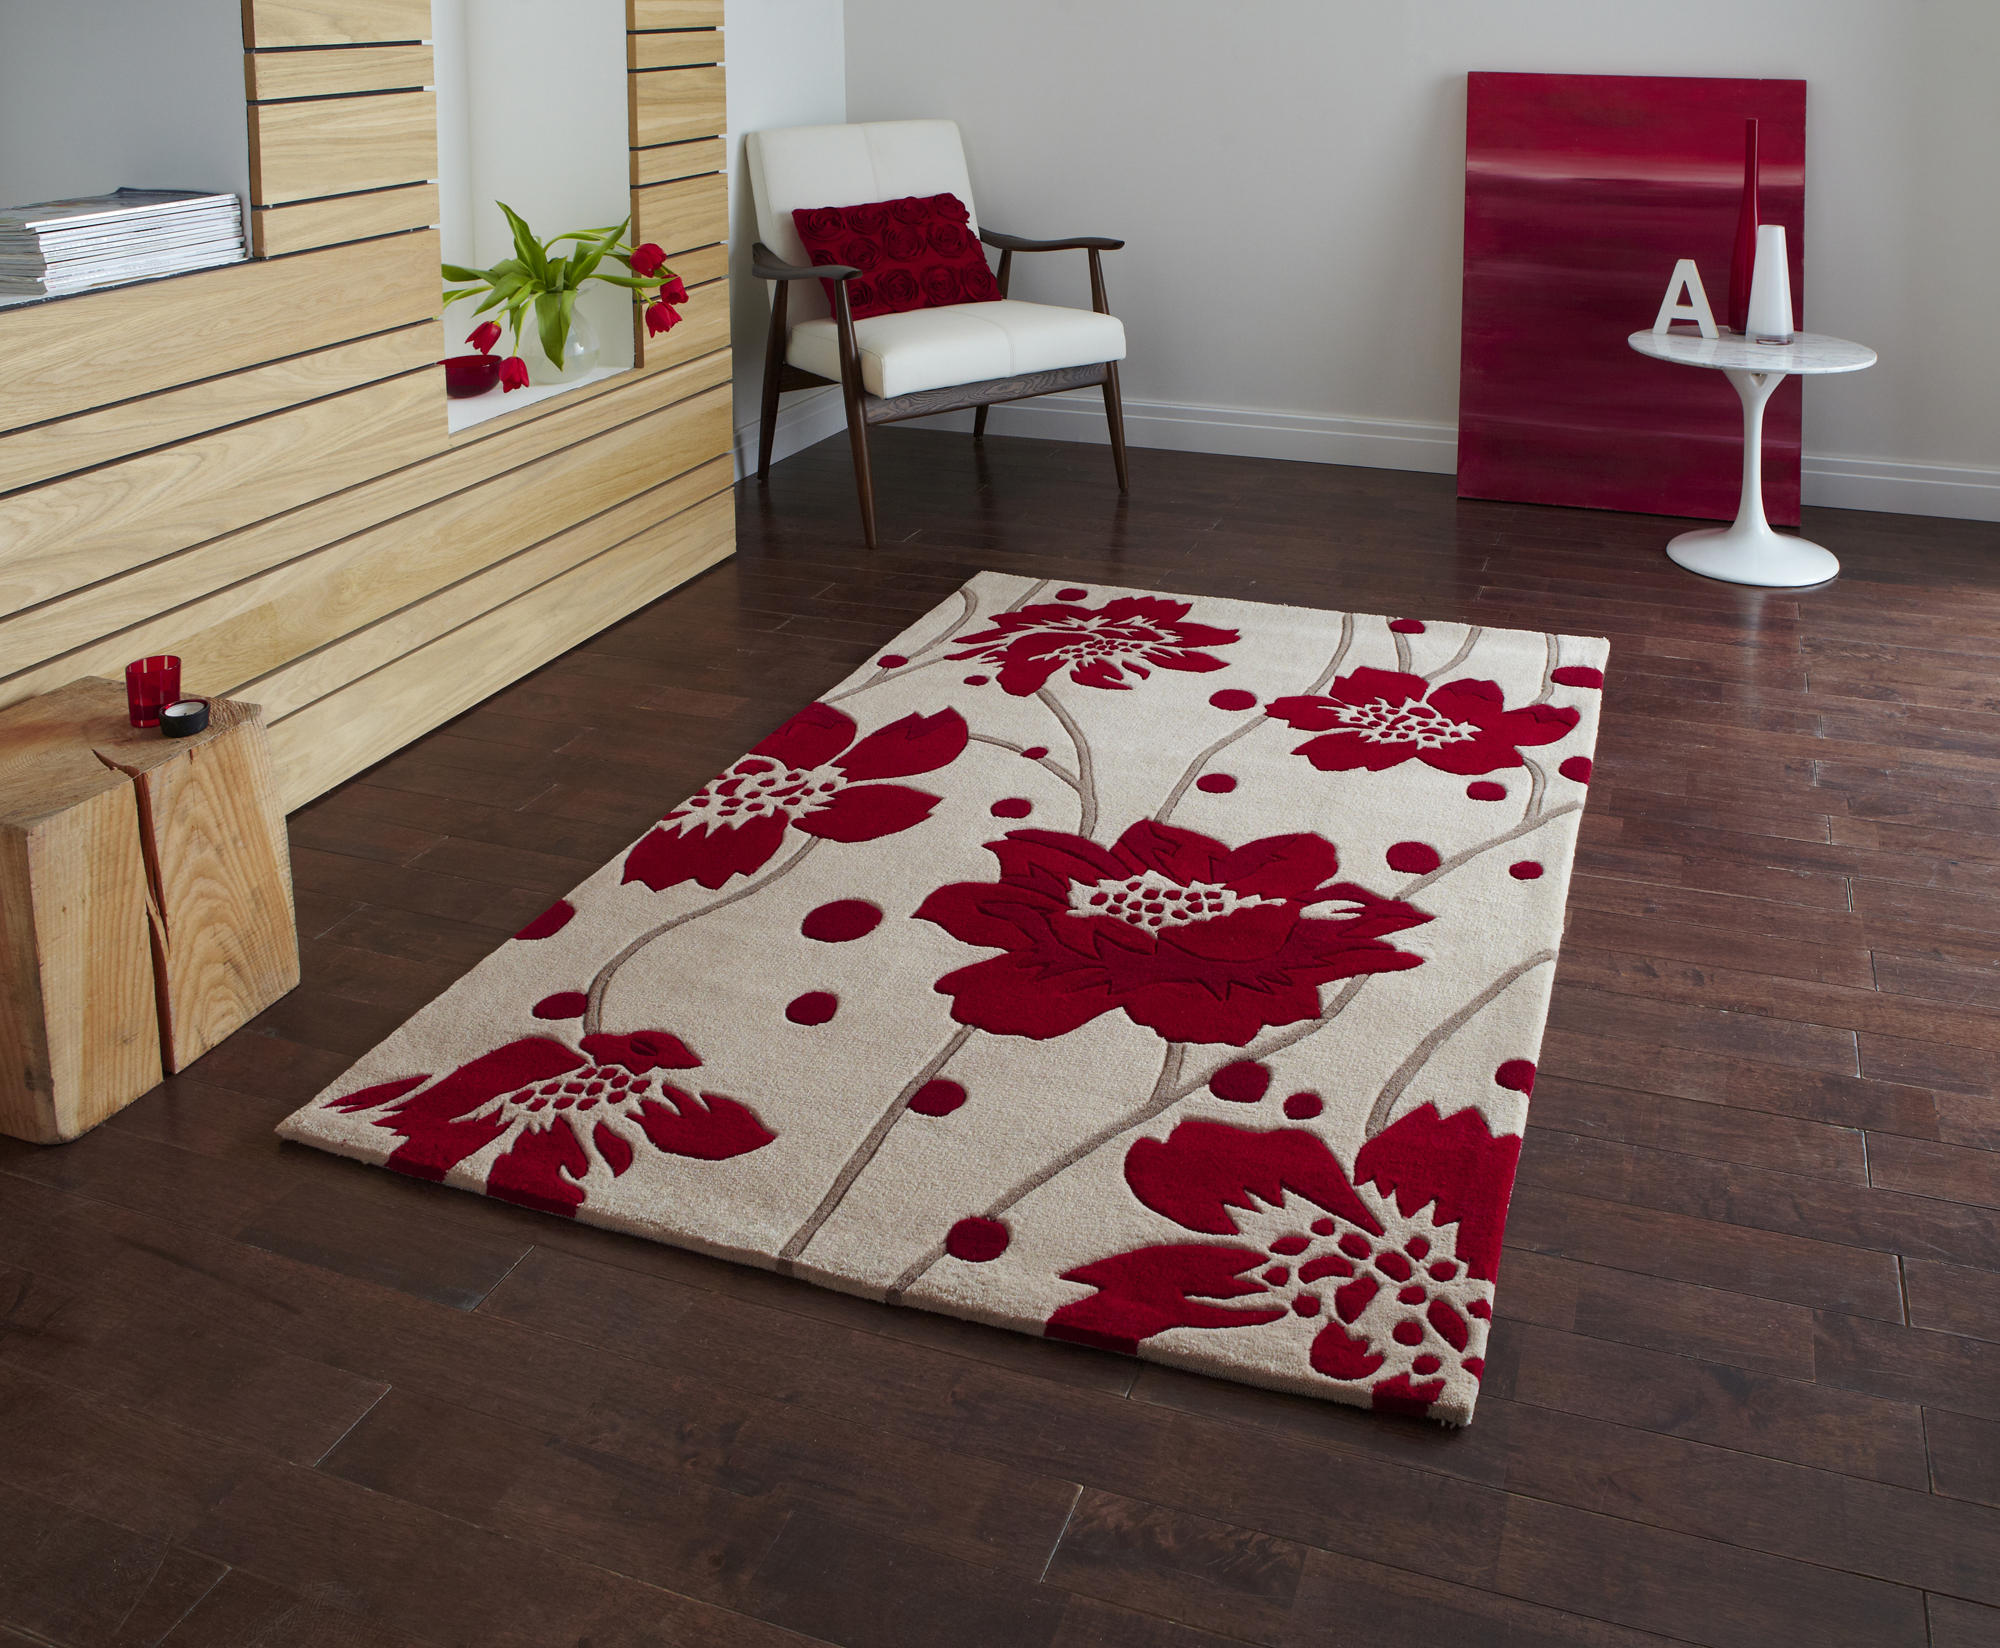 Rug modern floral flower beige red small medium large for Fotos de alfombras